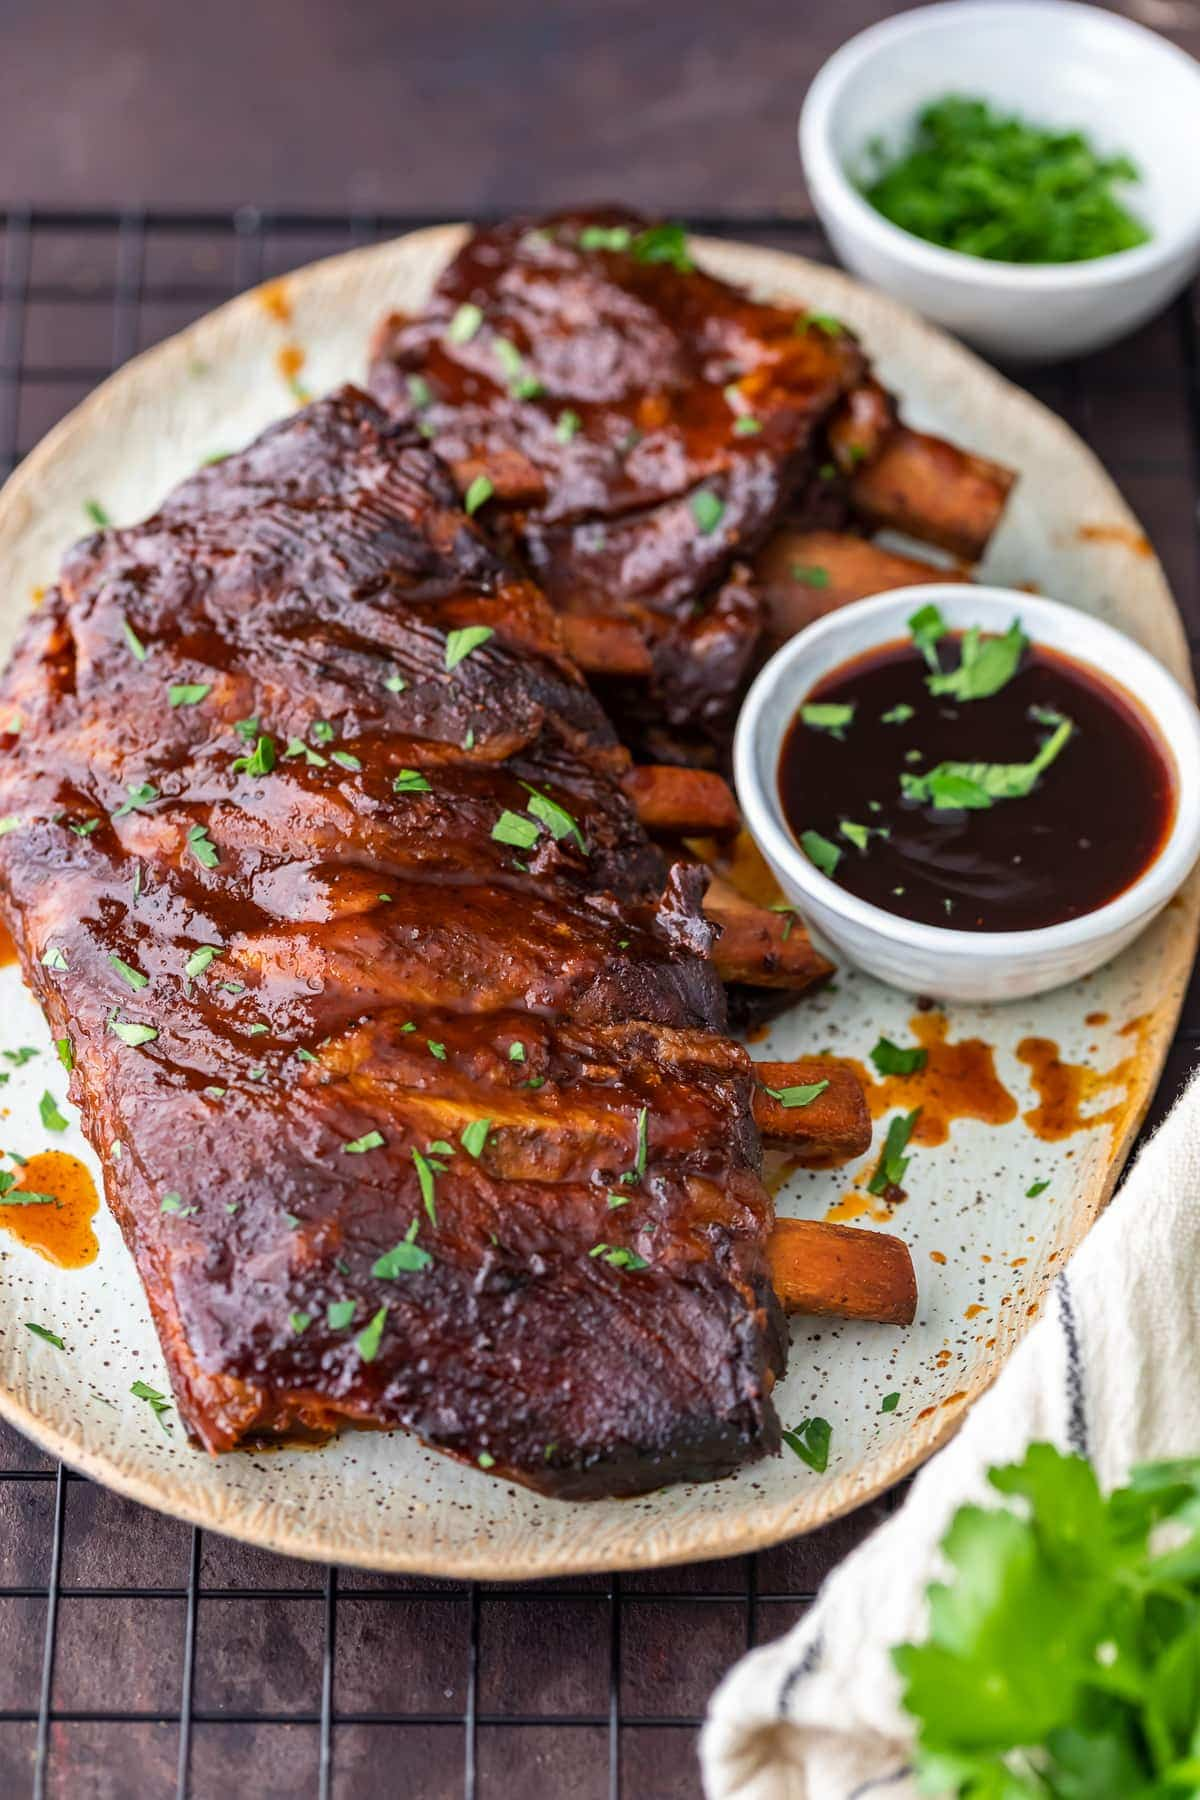 Crock Pot Ribs - Slow Cooker BBQ Ribs Recipe (HOW TO VIDEO!)